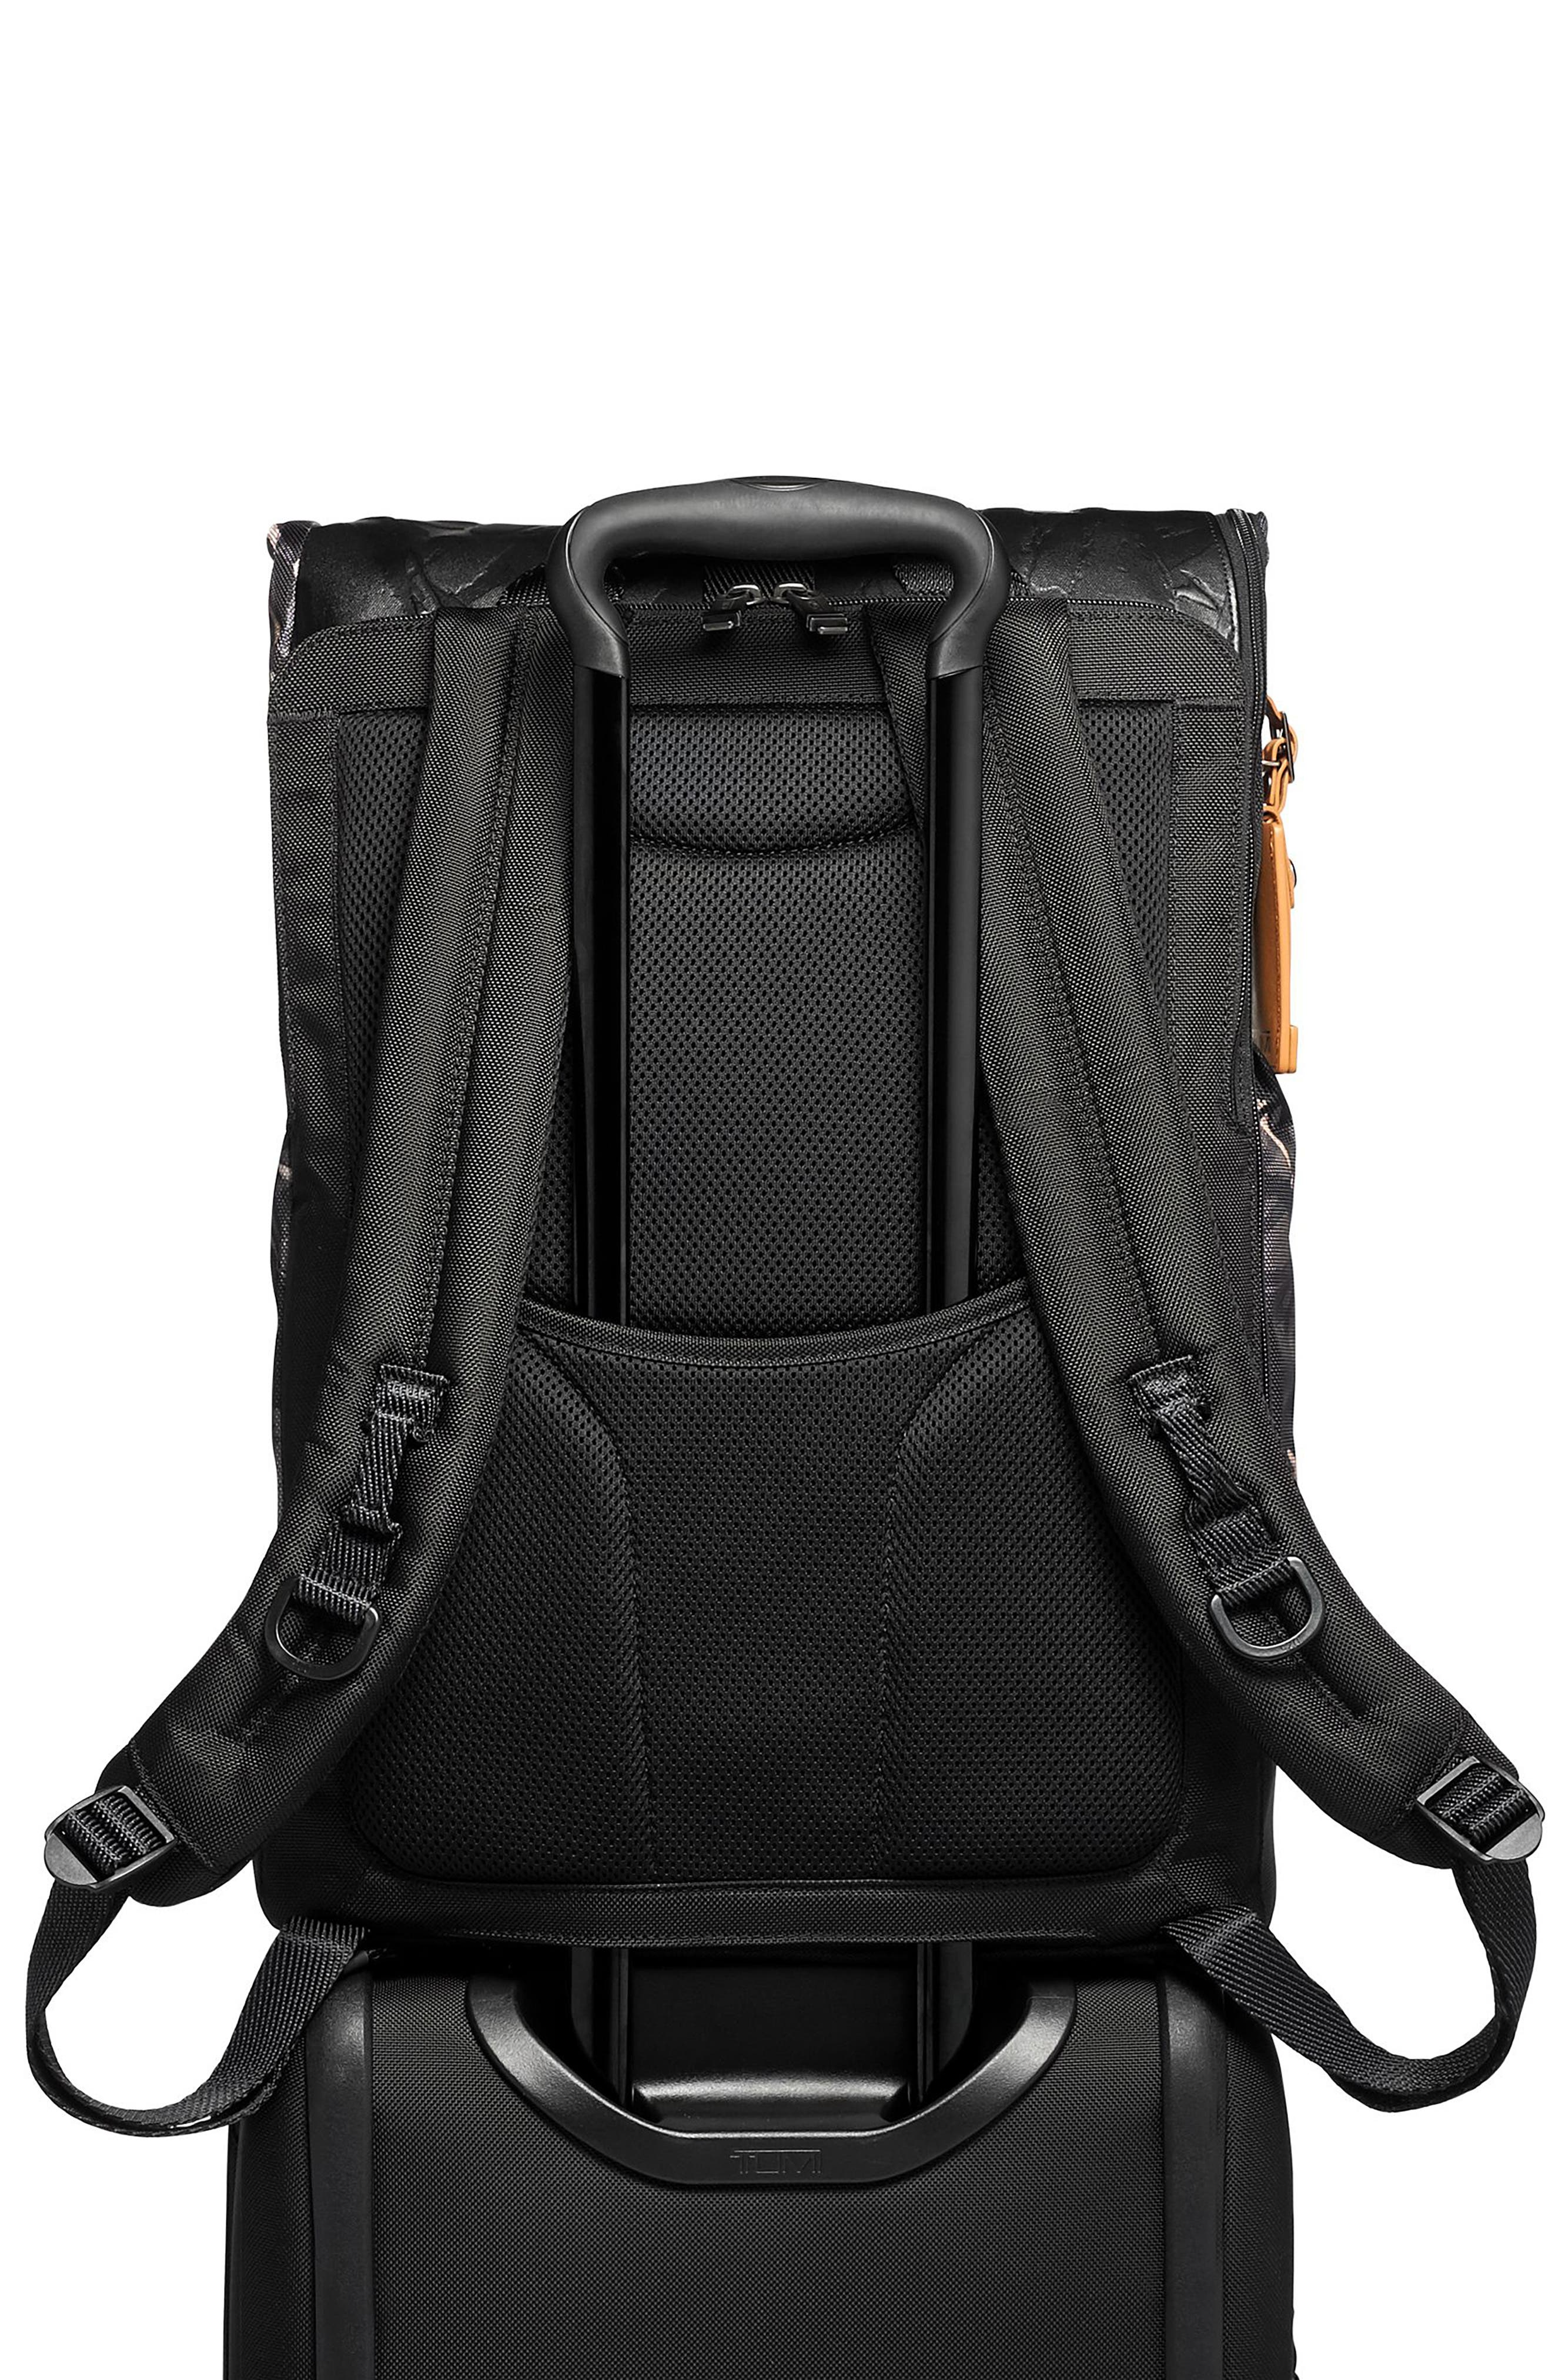 TUMI,                             Alpha Bravo London Backpack,                             Alternate thumbnail 5, color,                             GREY HIGHLANDS PRINT